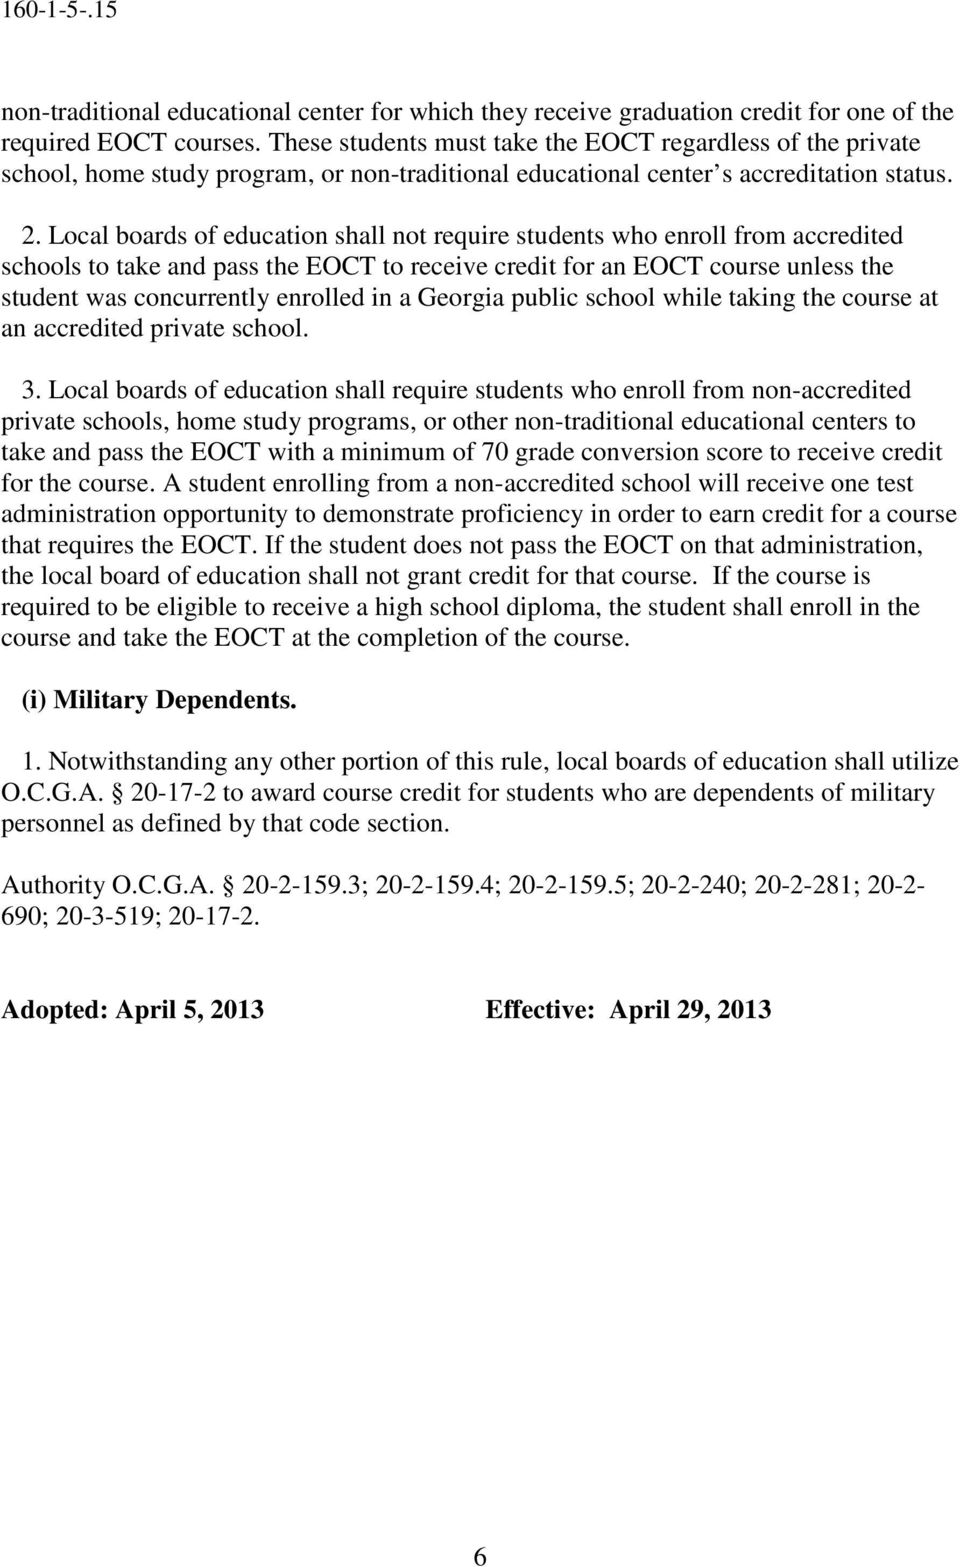 Local boards of education shall not require students who enroll from accredited schools to take and pass the EOCT to receive credit for an EOCT course unless the student was concurrently enrolled in